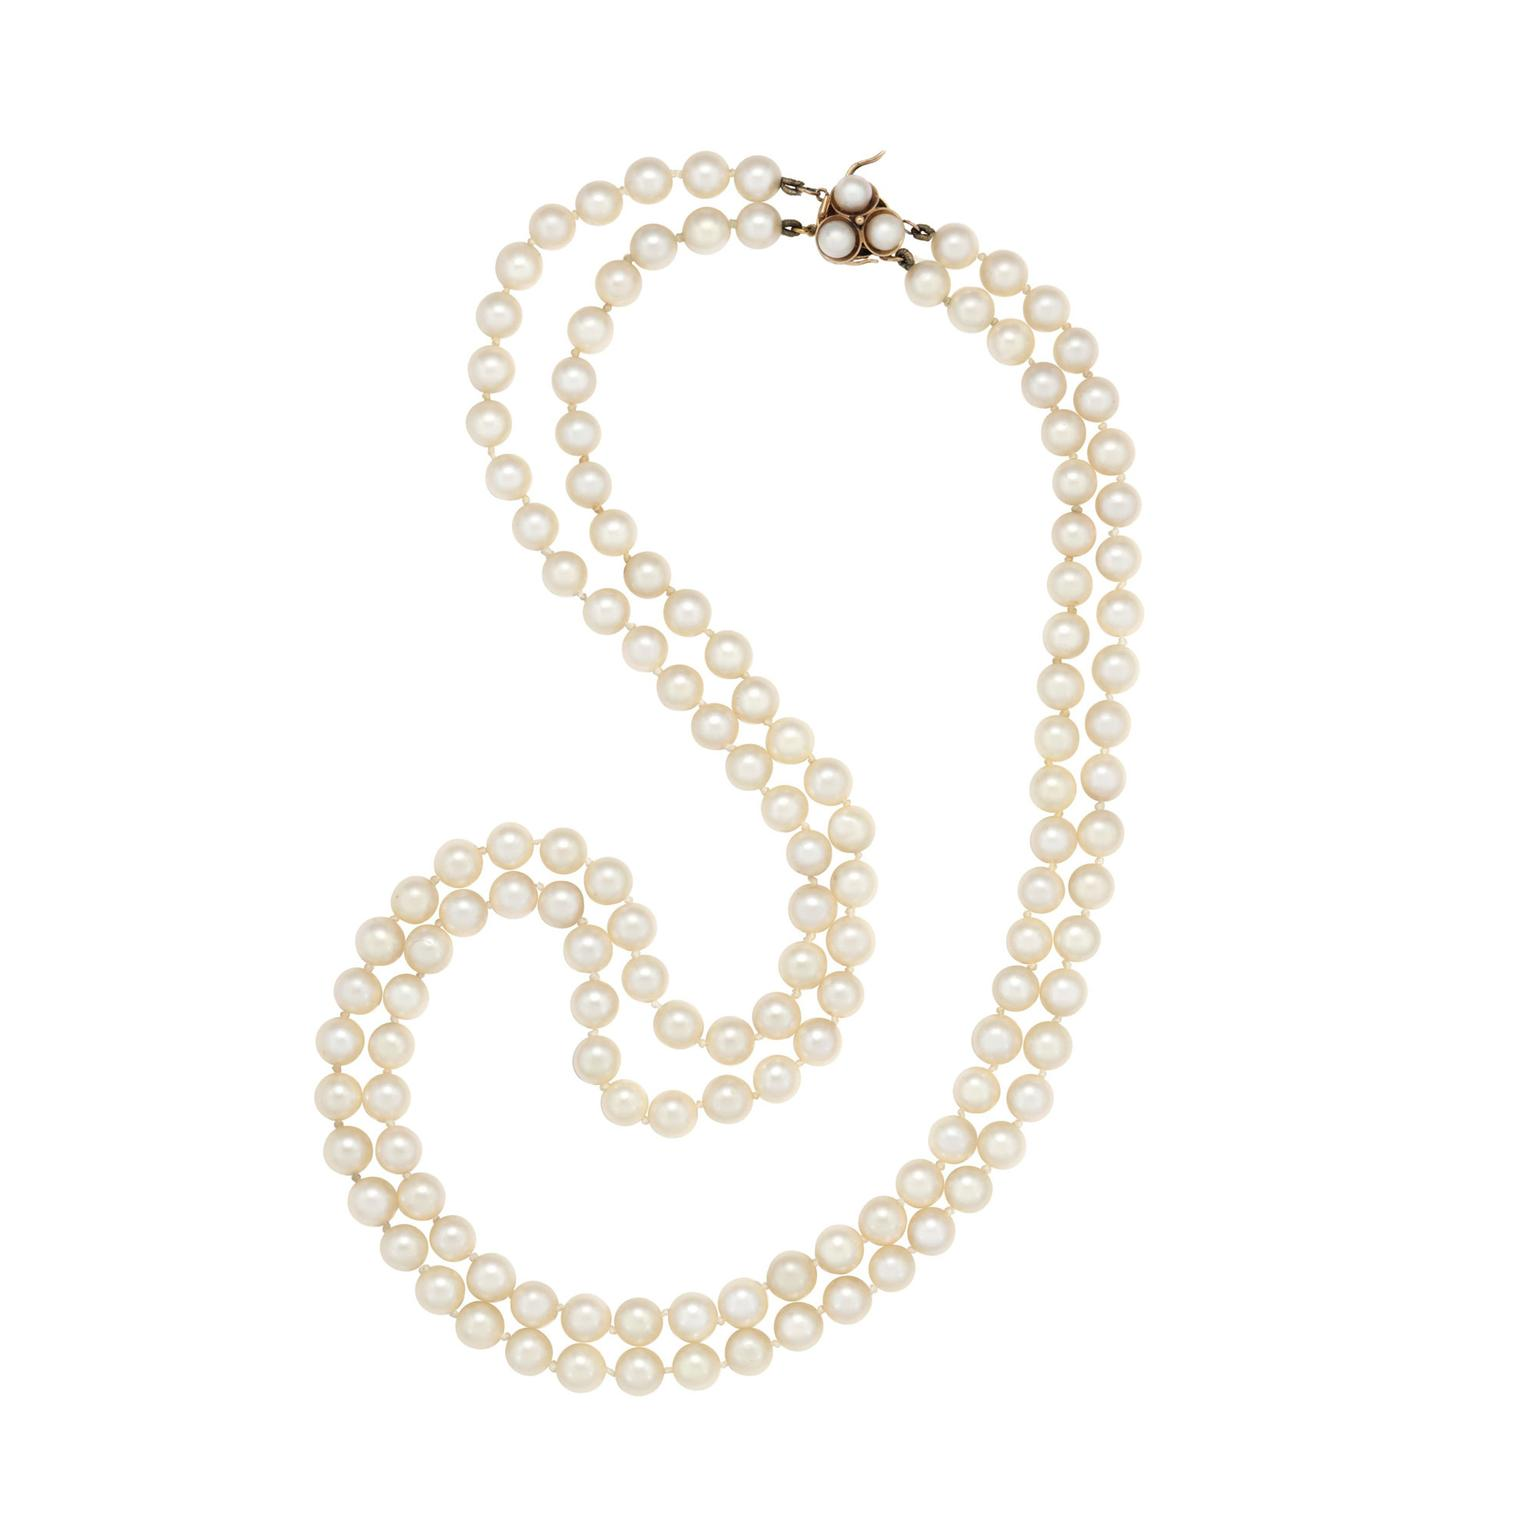 Margaret Thatcher two-row cultured pearl necklace